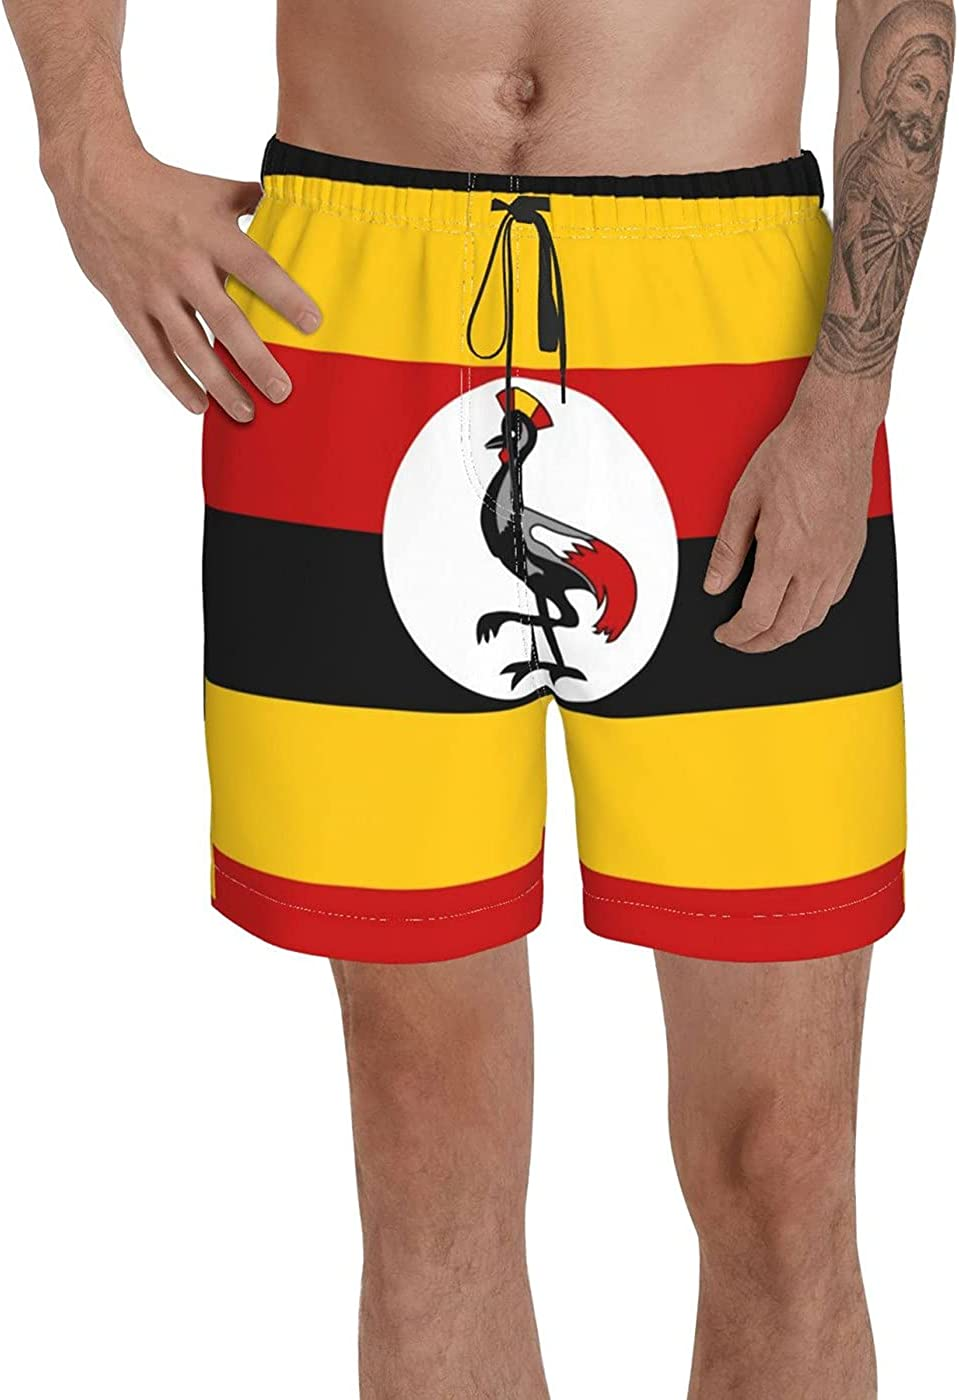 Count Uganda Flag Men's 3D Printed Funny Summer Quick Dry Swim Short Board Shorts with